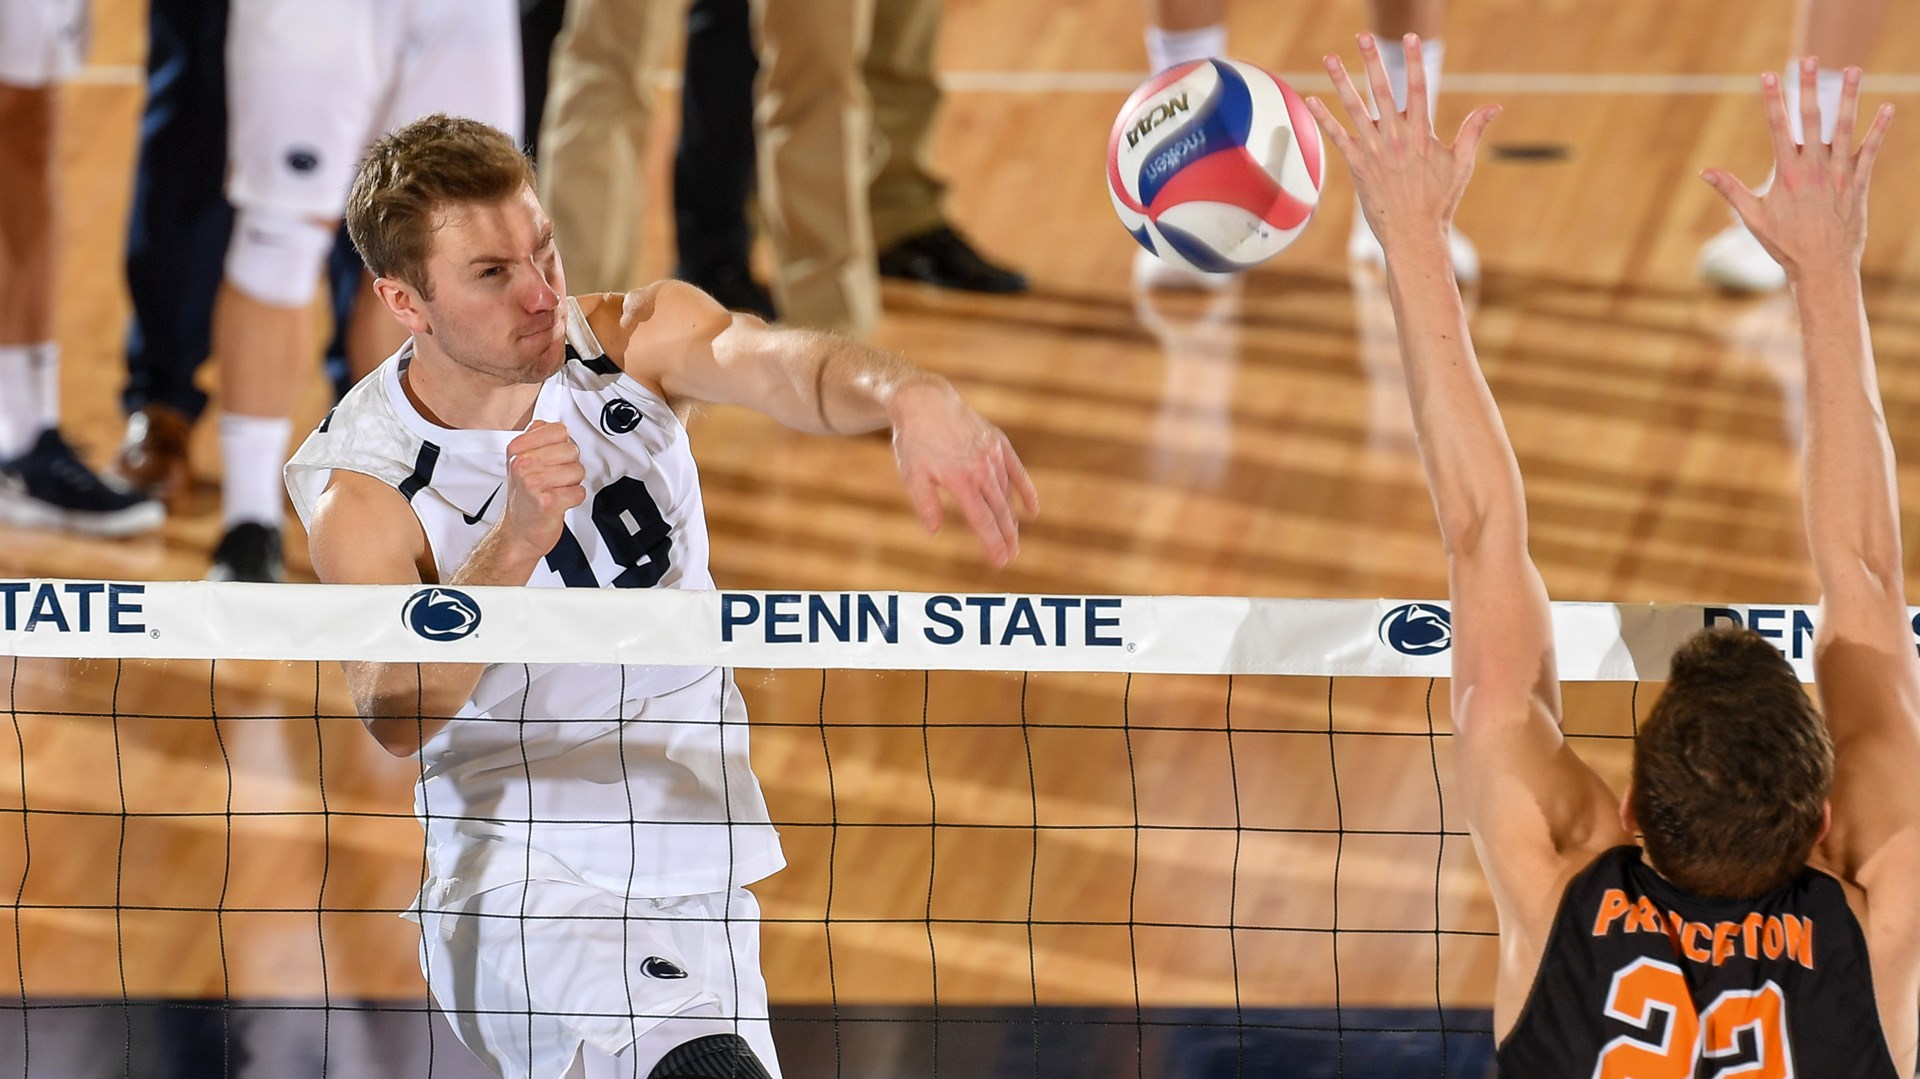 Cal Fisher Men S Volleyball Penn State University Athletics